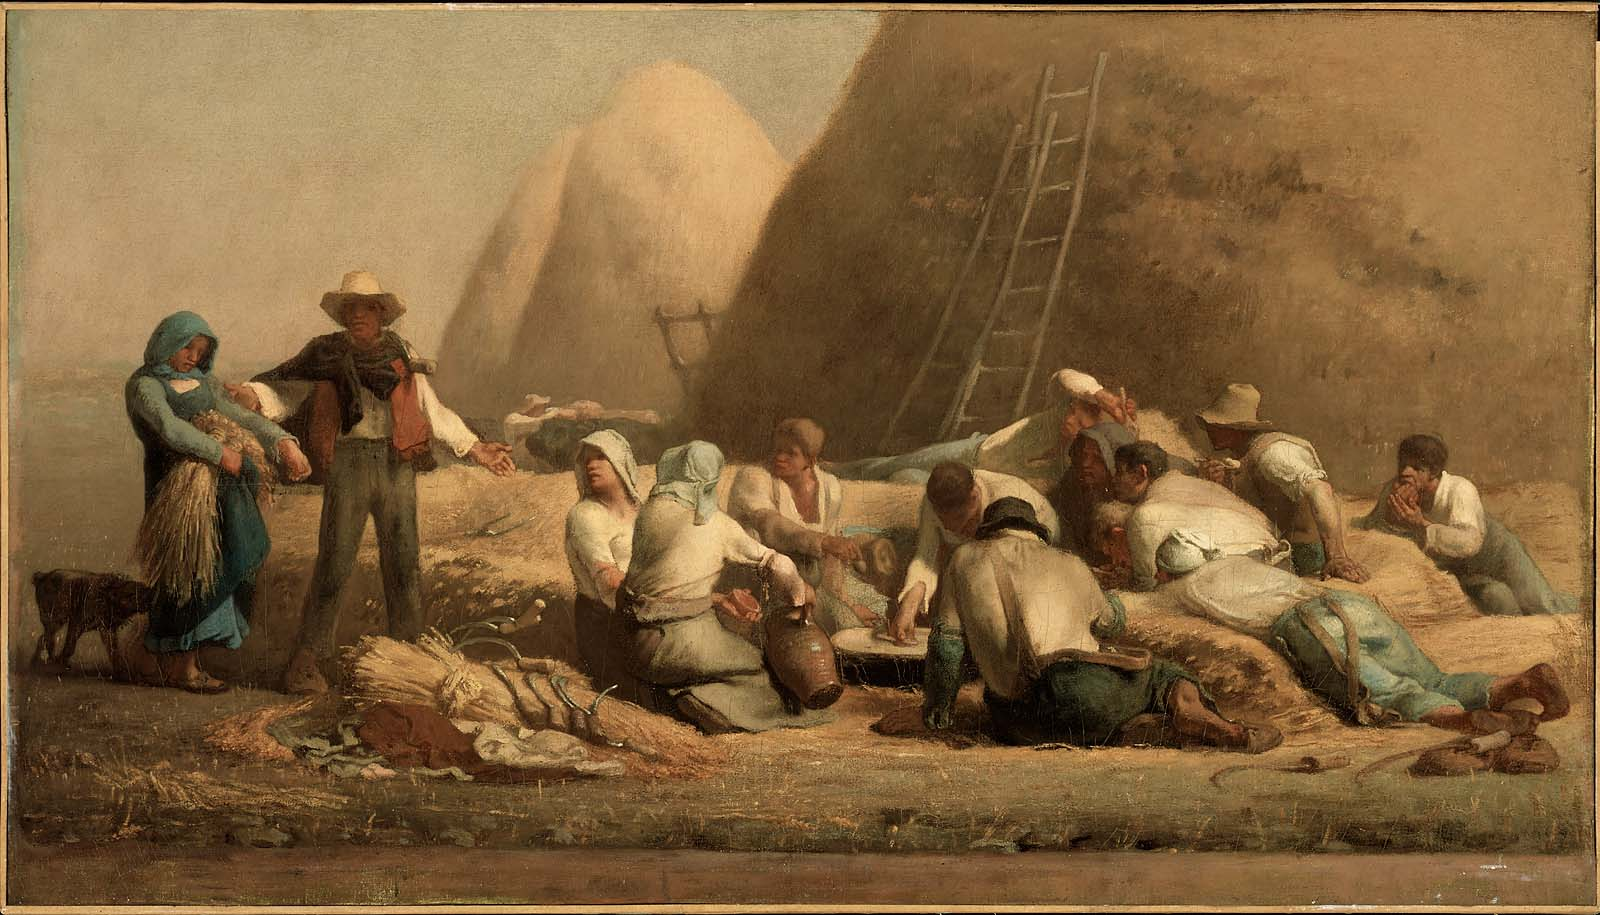 Harvesters Resting in the Field (Ruth and Boaz)